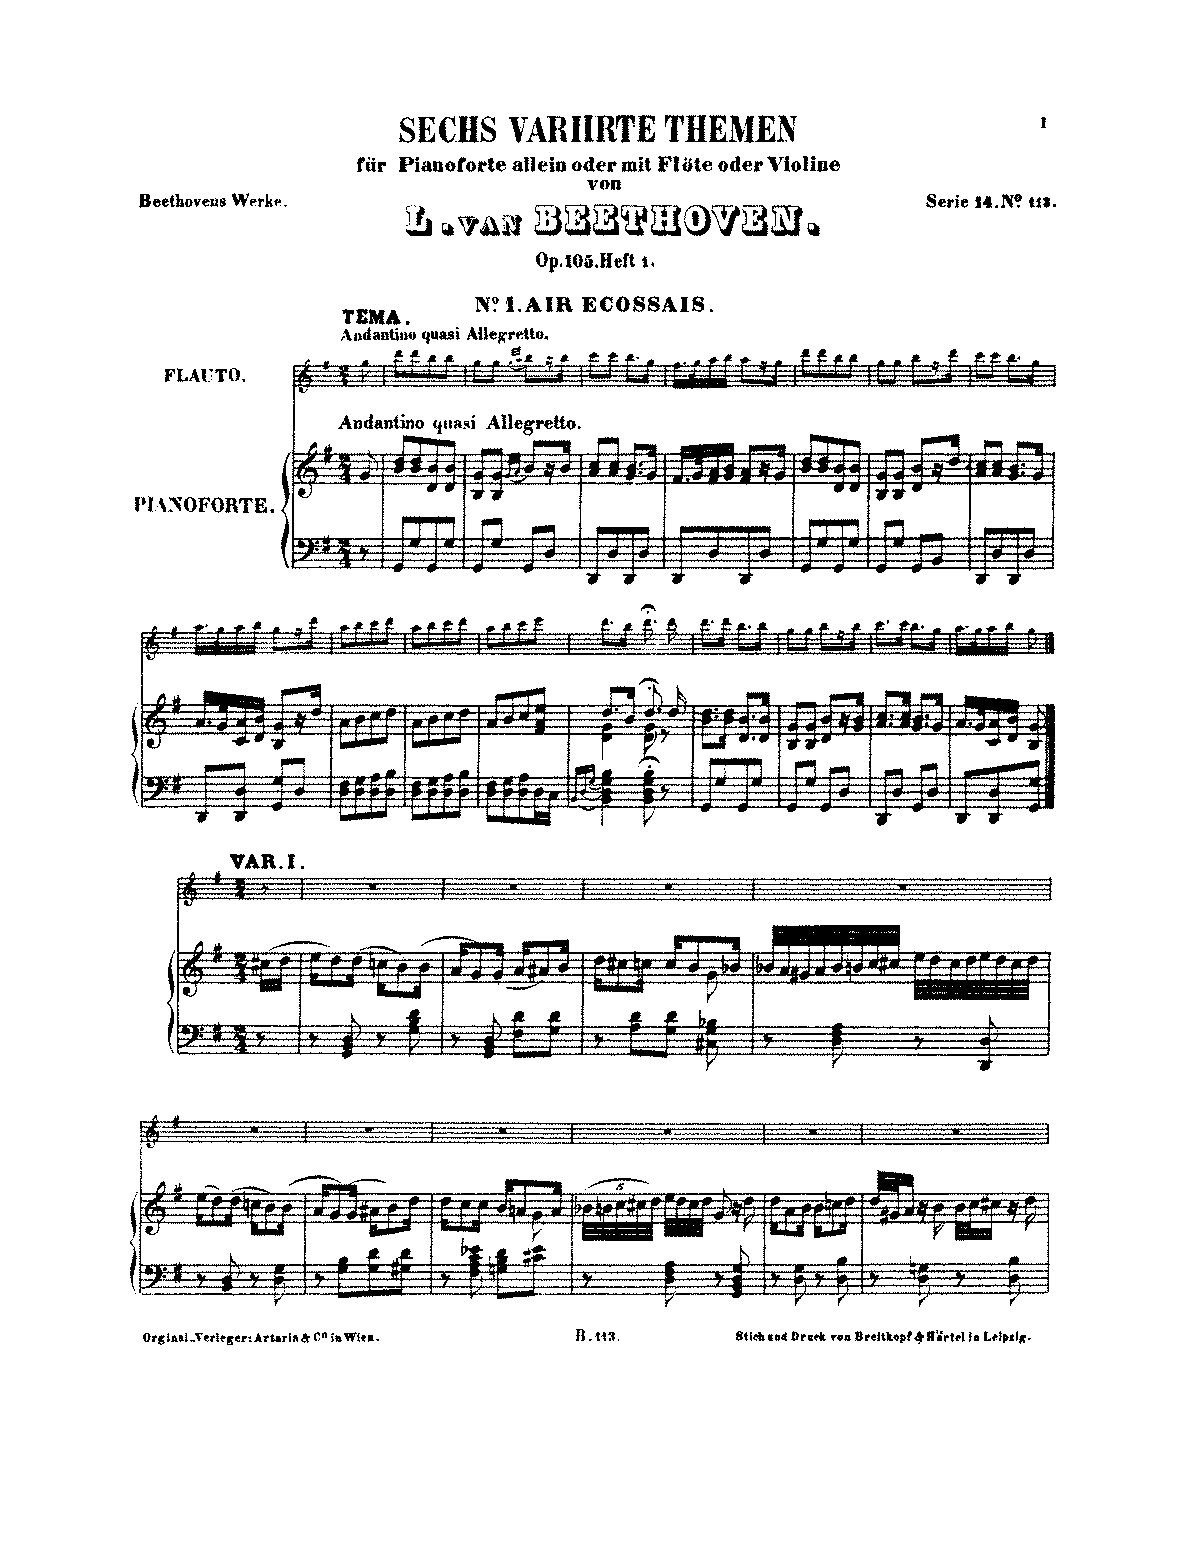 Beethoven 6themesandvariations op105 heft1 piano.pdf